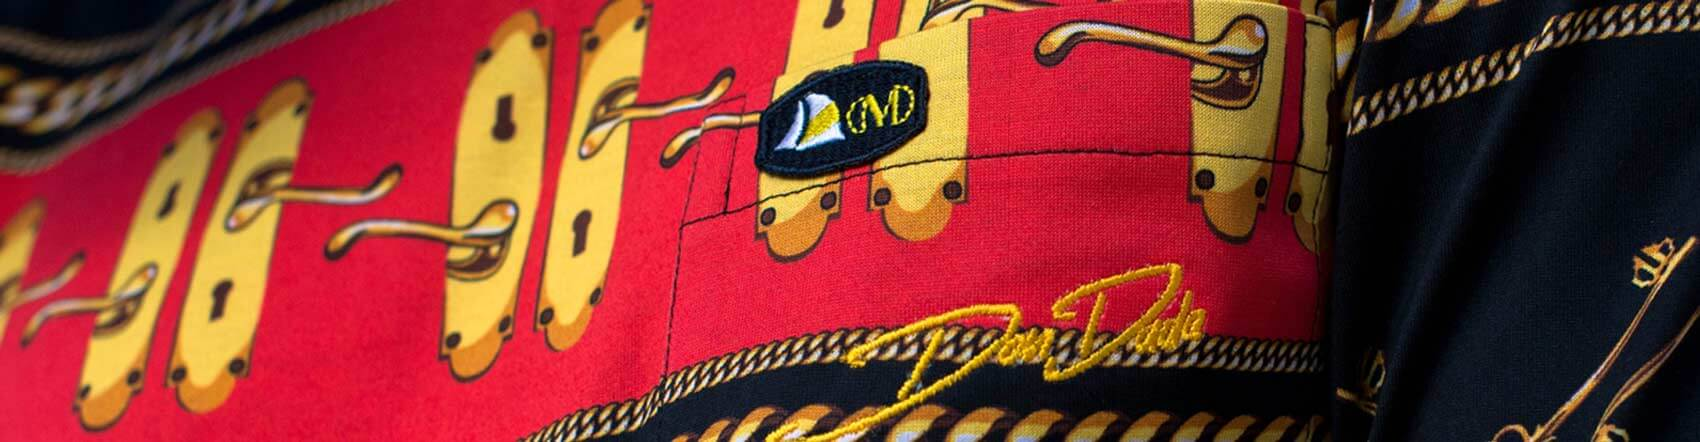 DMD Muracchini Stores dmd muracchini - DMD Muracchini | Stores near you